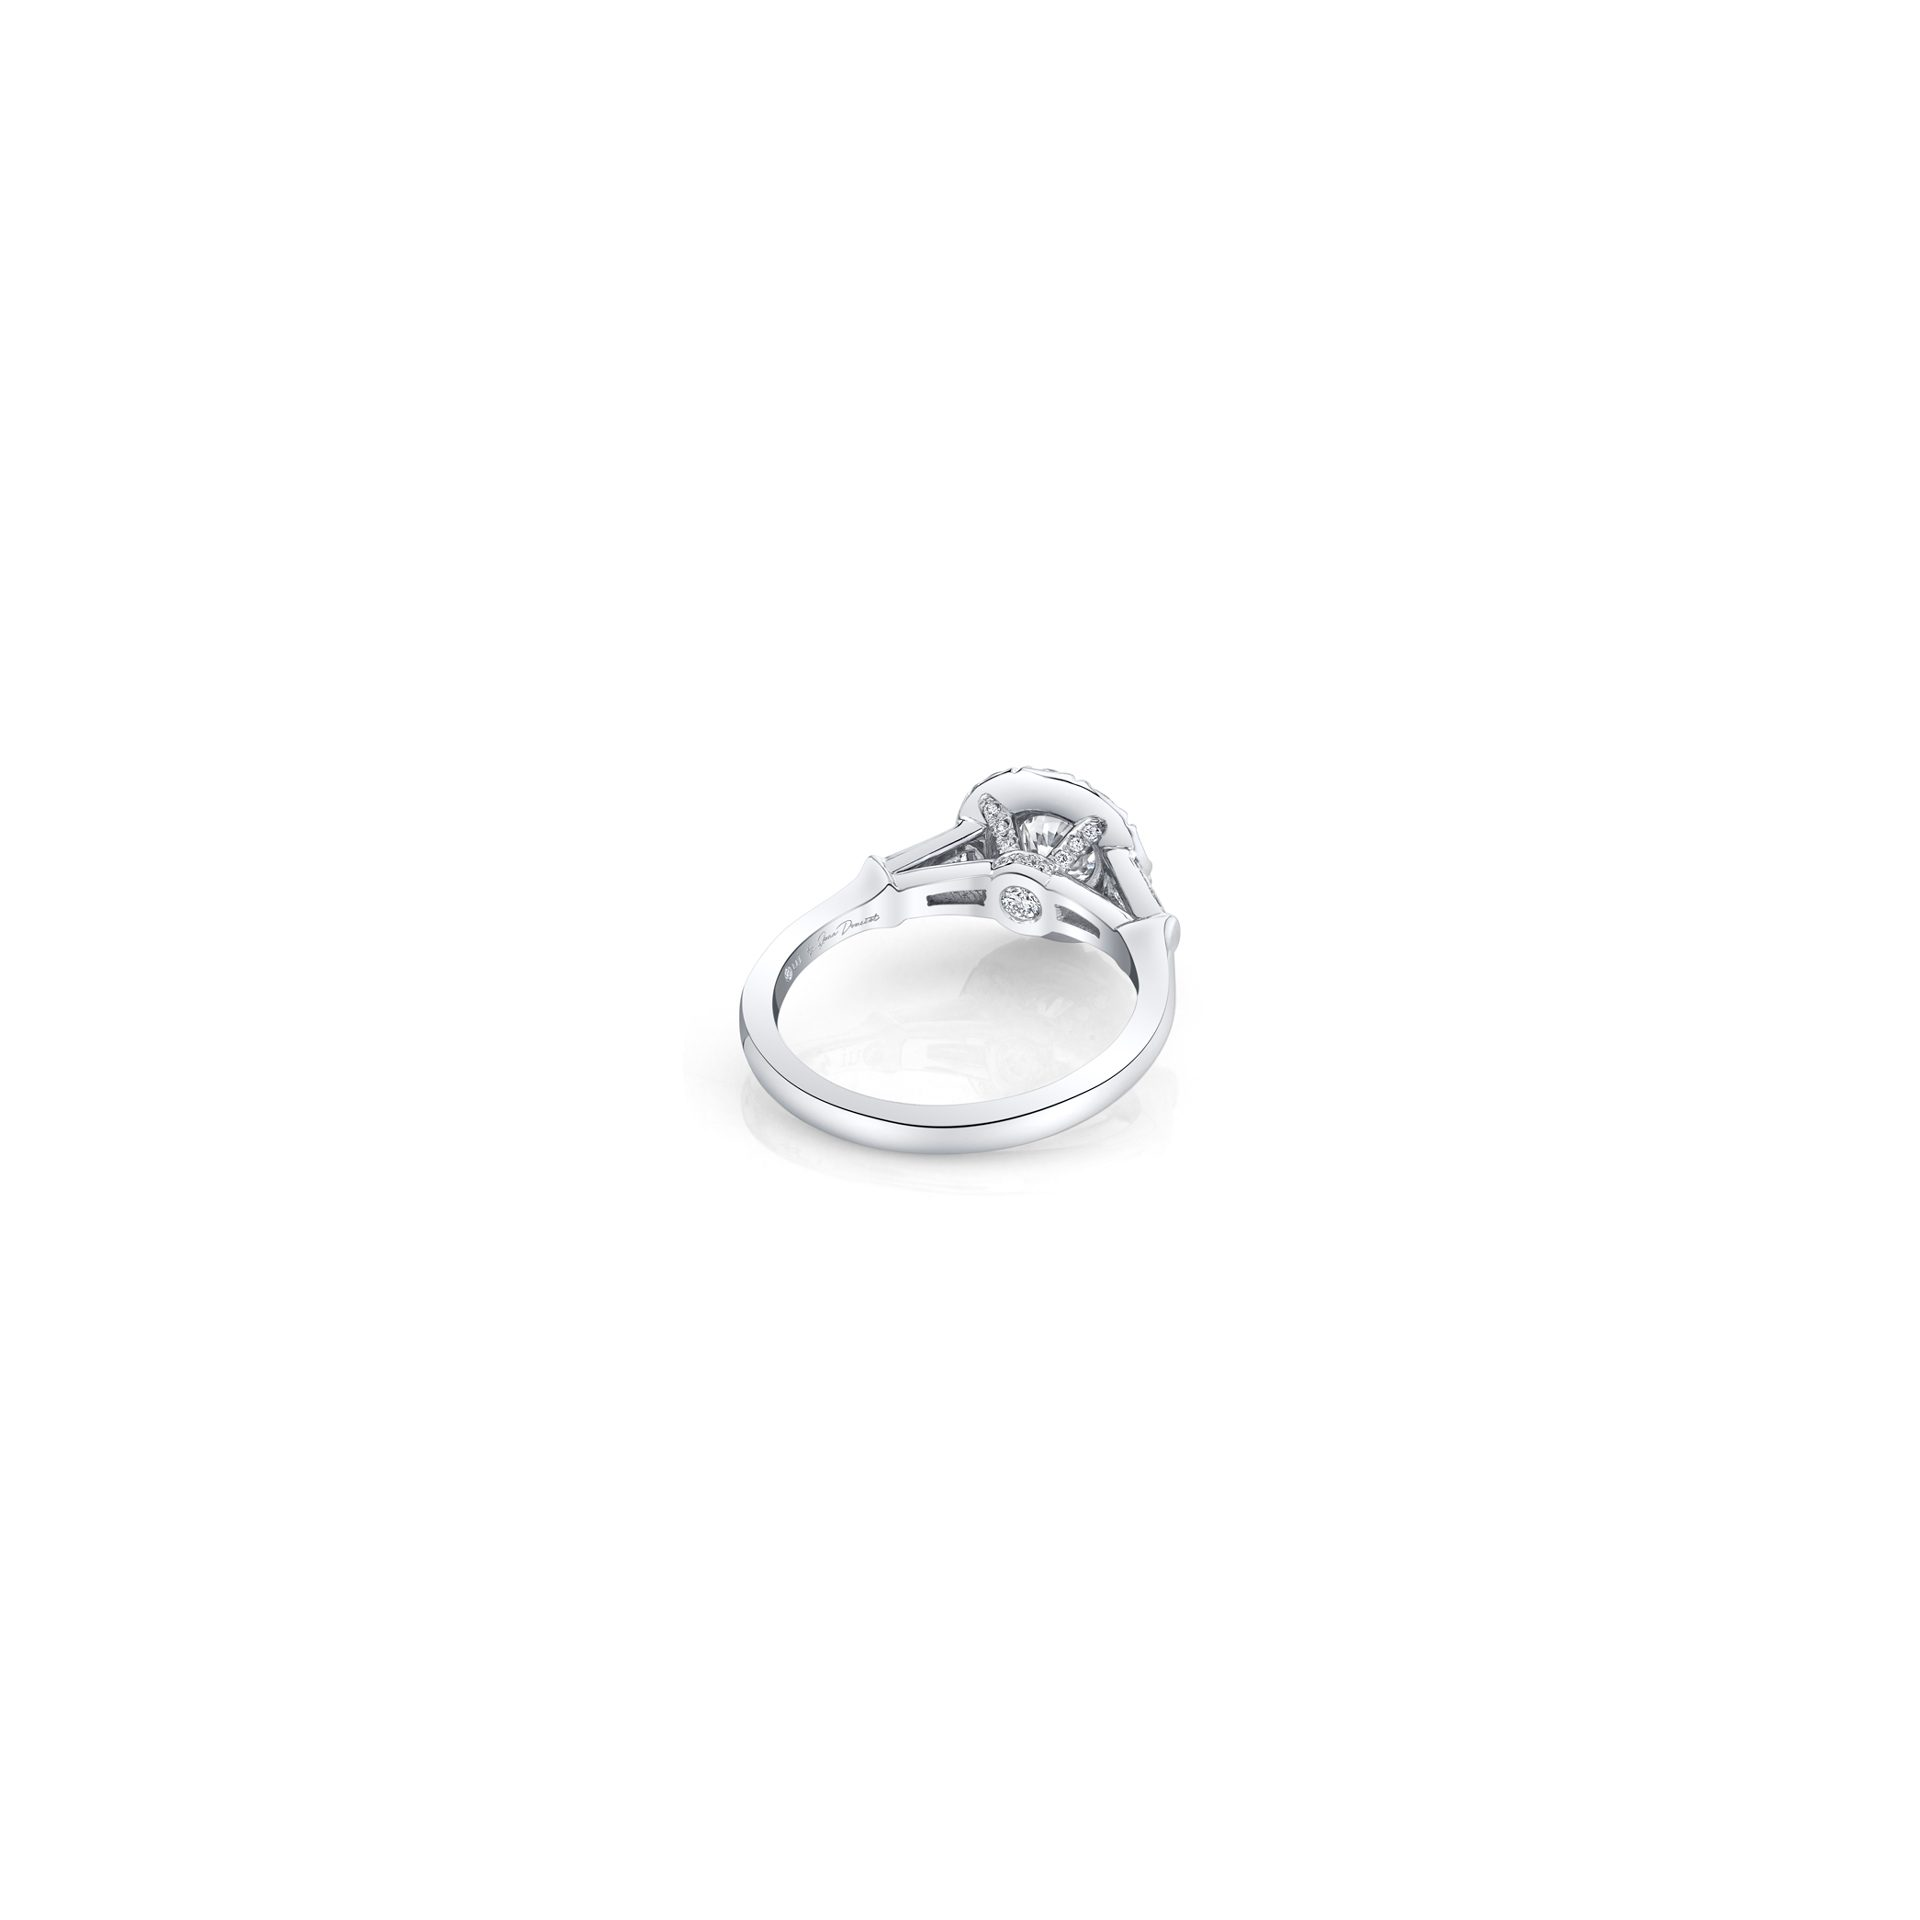 Madeline Round Brilliant Seamless Solitaire™ Three Stone Engagement Ring with tapered baguette diamond side stones in 18k White Gold Back View by Oui by Jean Dousset